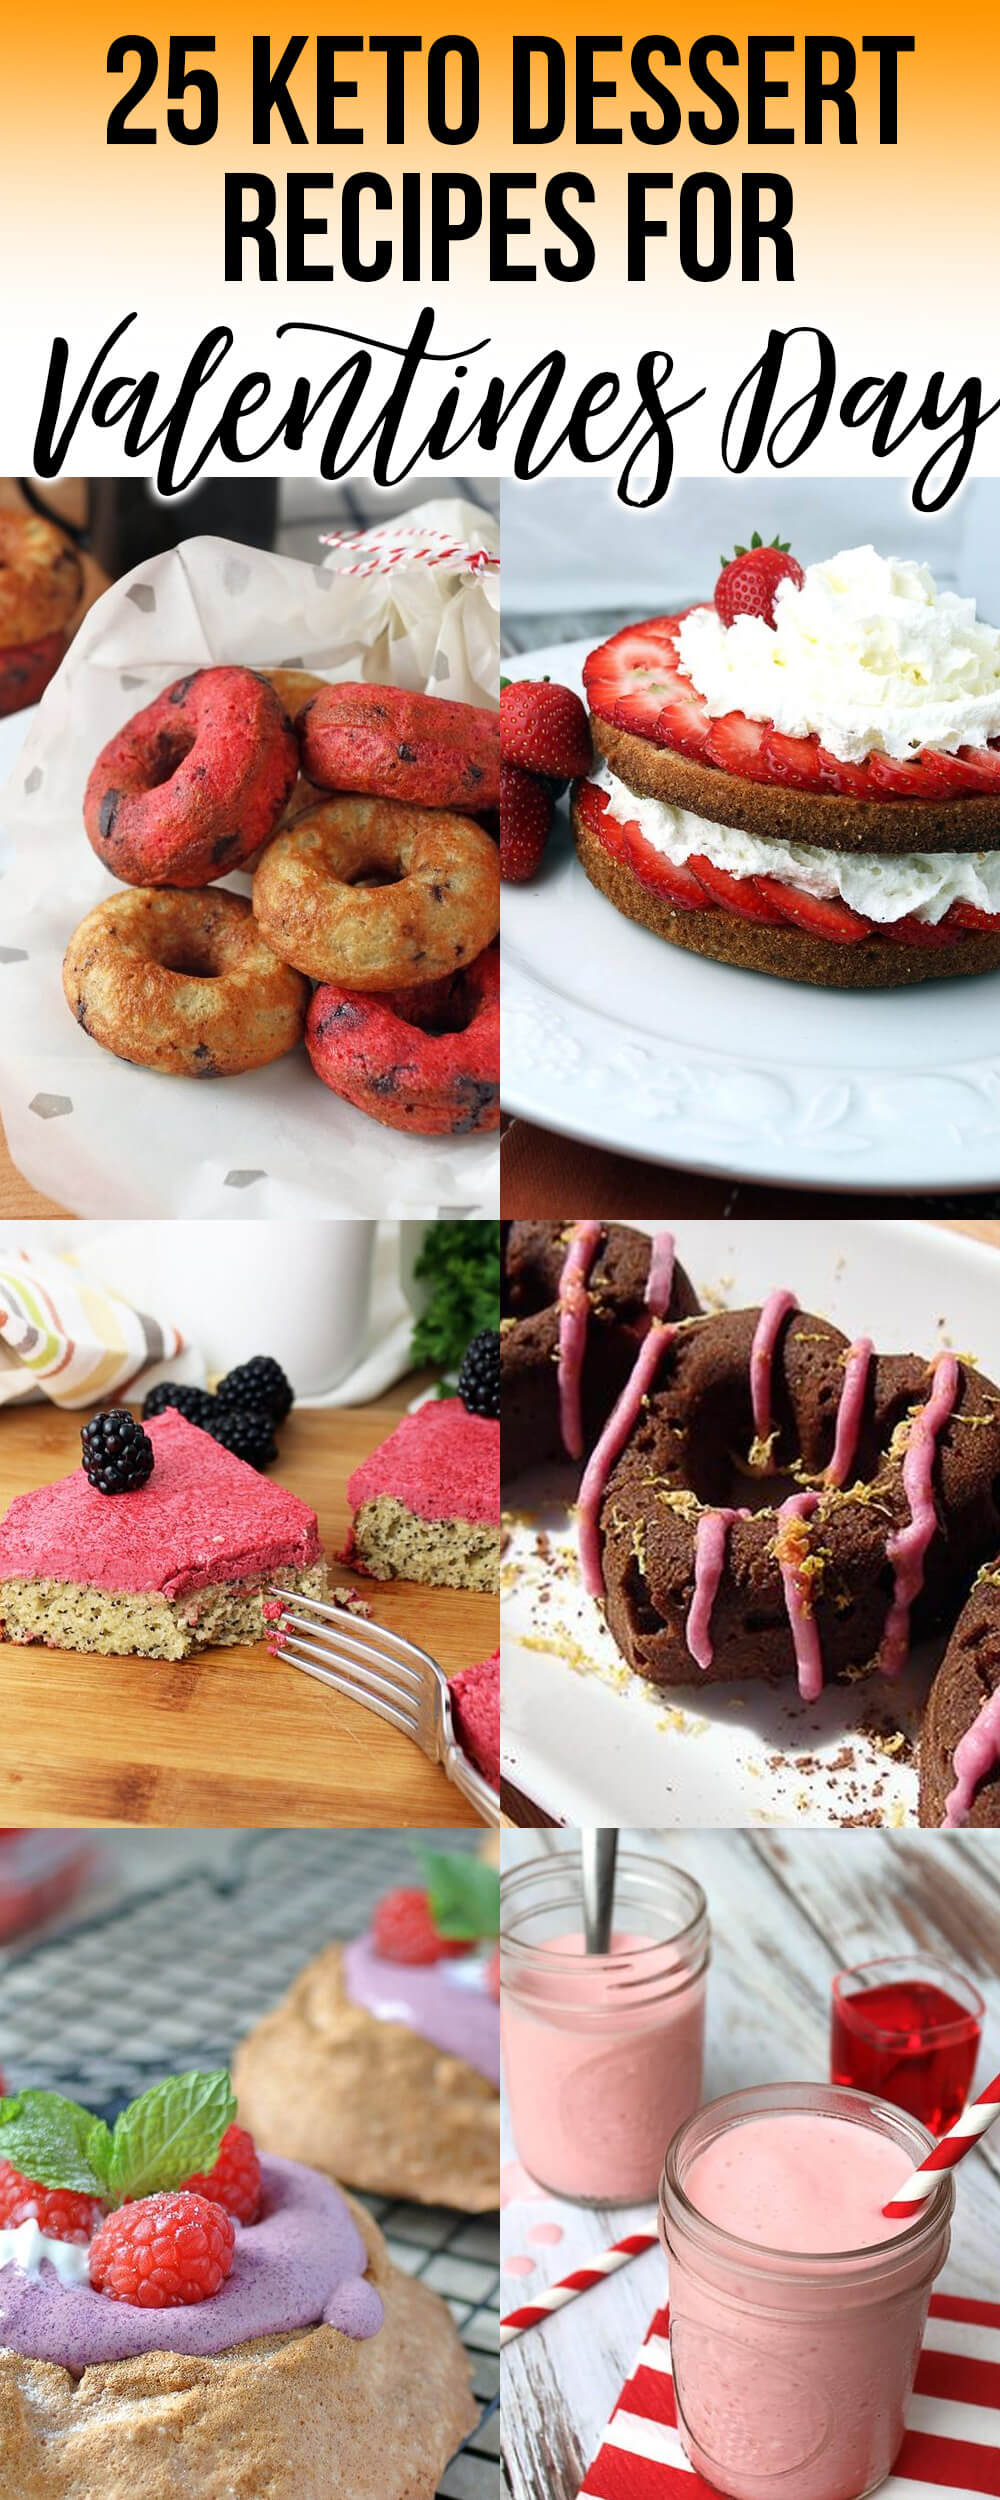 25 keto dessert recipes for valentines day ruled me for Good valentines day meals